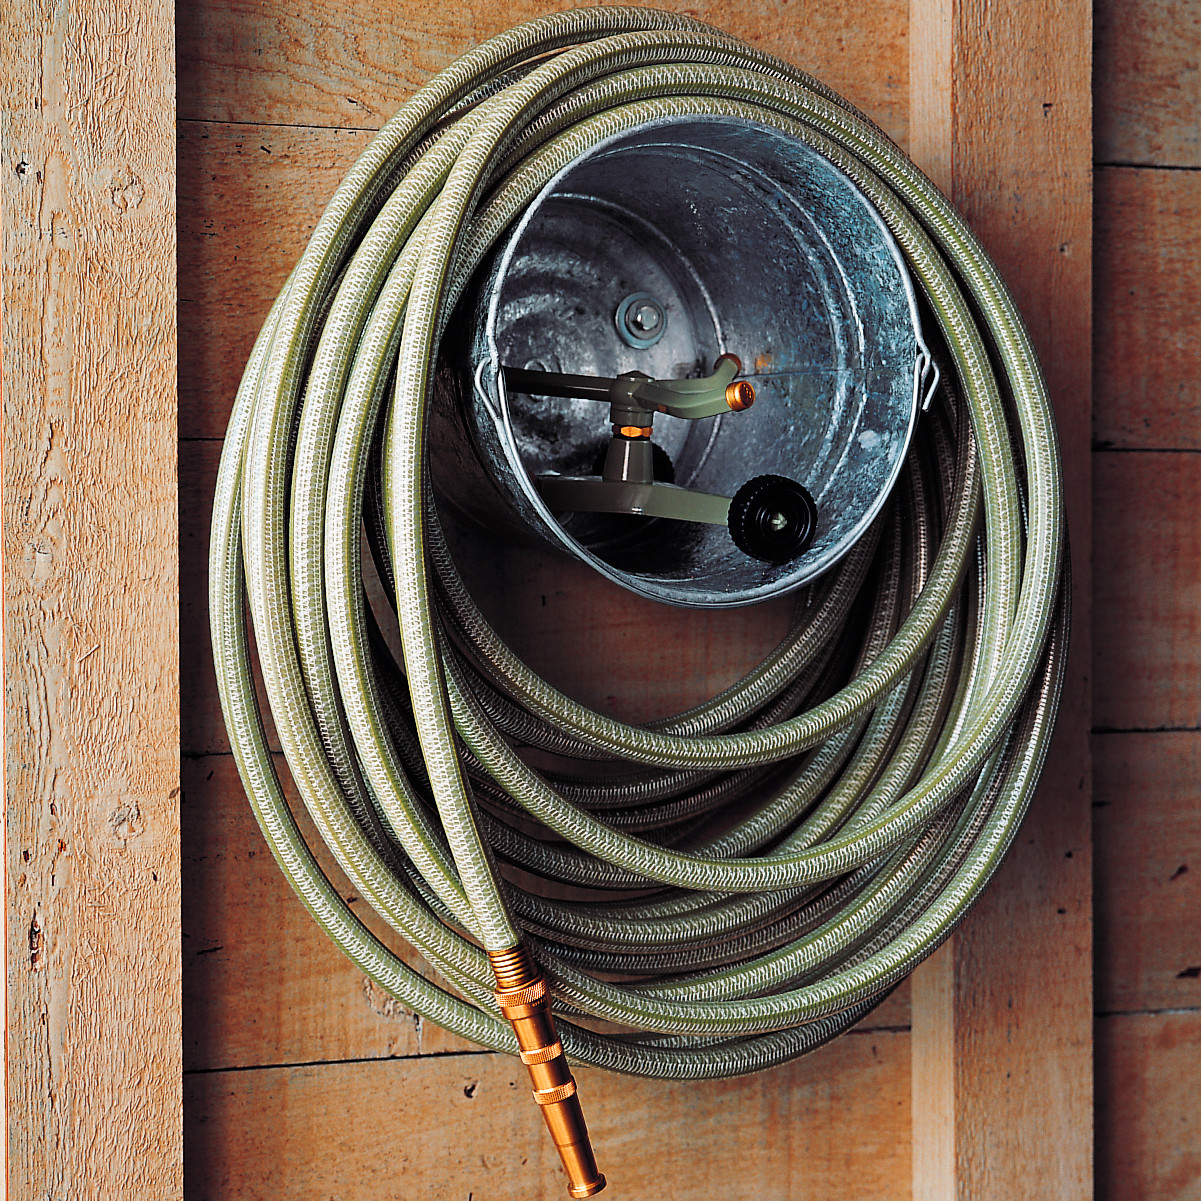 Diy bucket hose storage